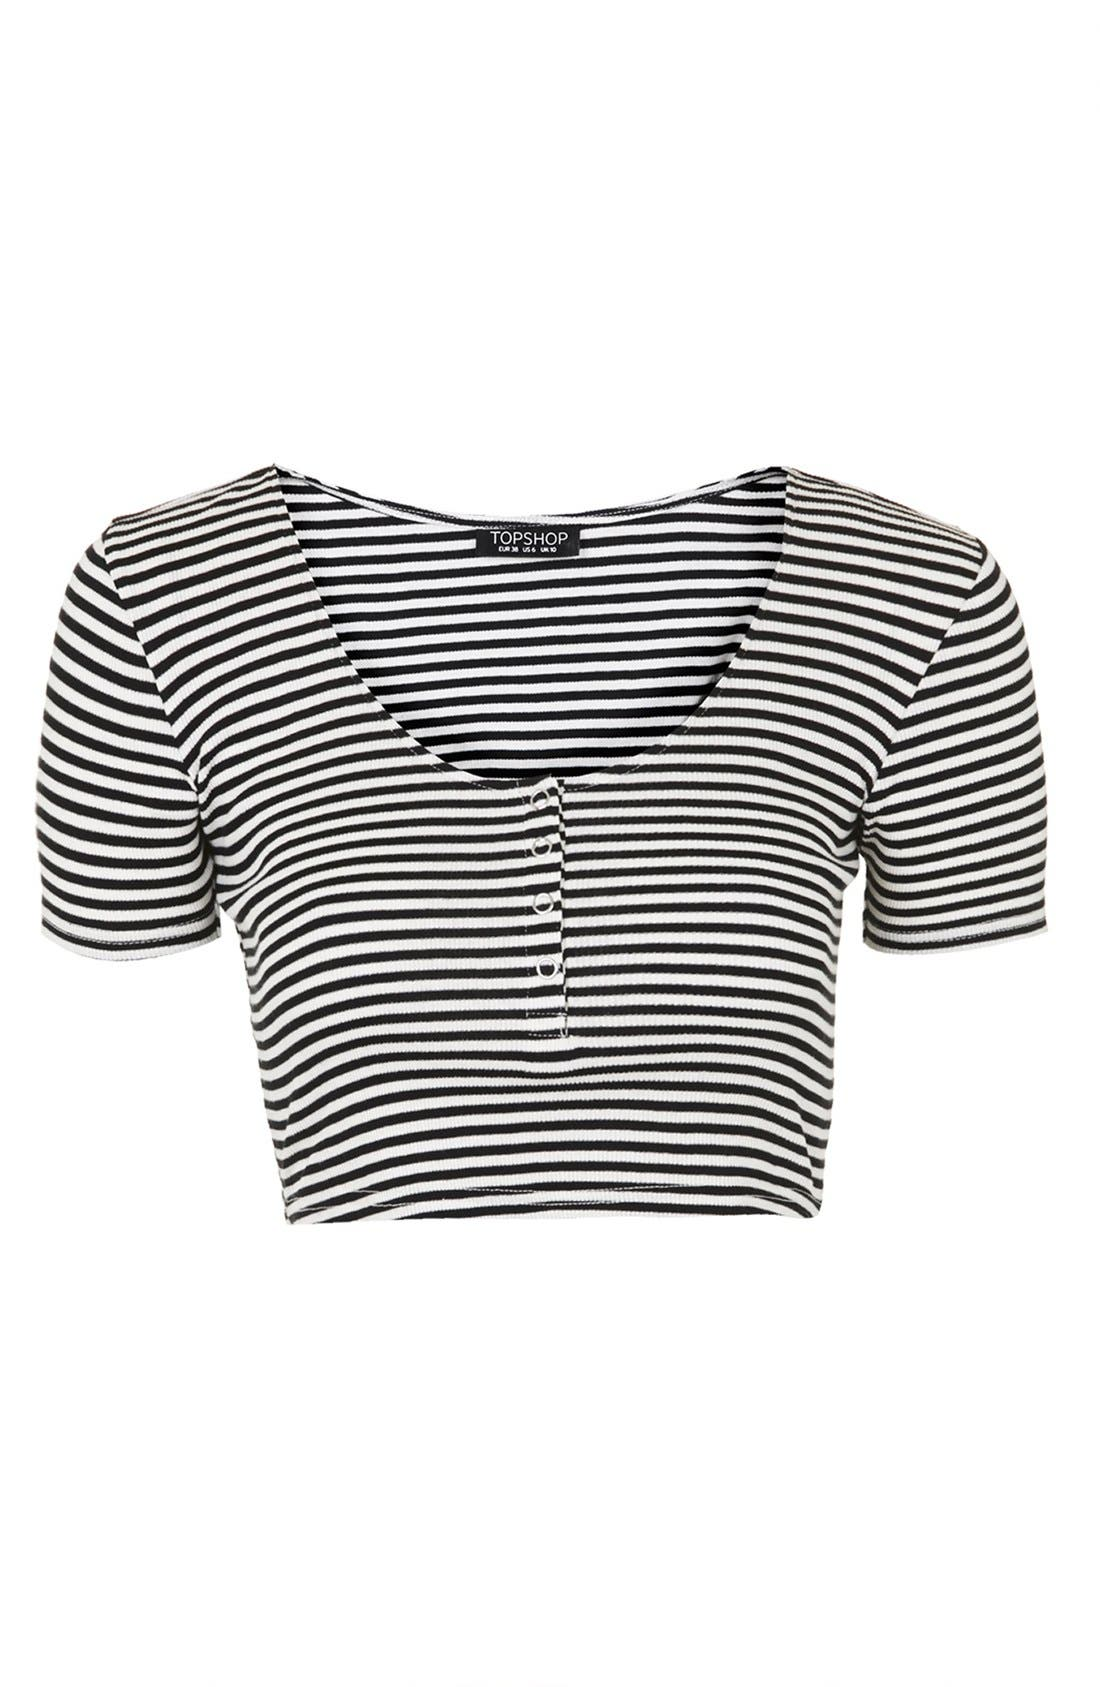 Alternate Image 4  - Topshop Stripe Rib Knit Crop Top